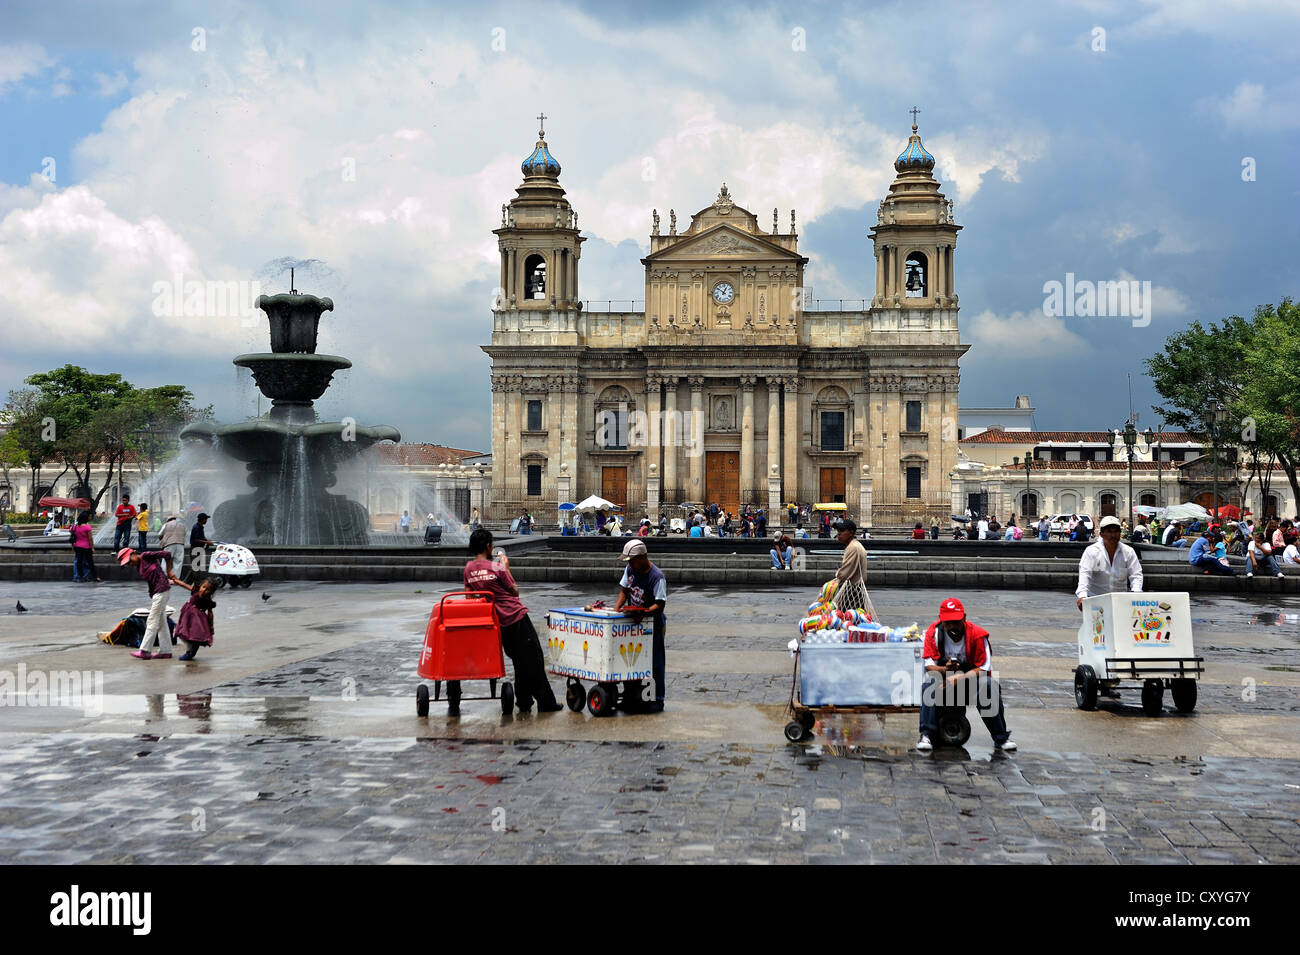 Cathedral on Parque Central square, Guatemala City, Guatemala, Central America - Stock Image